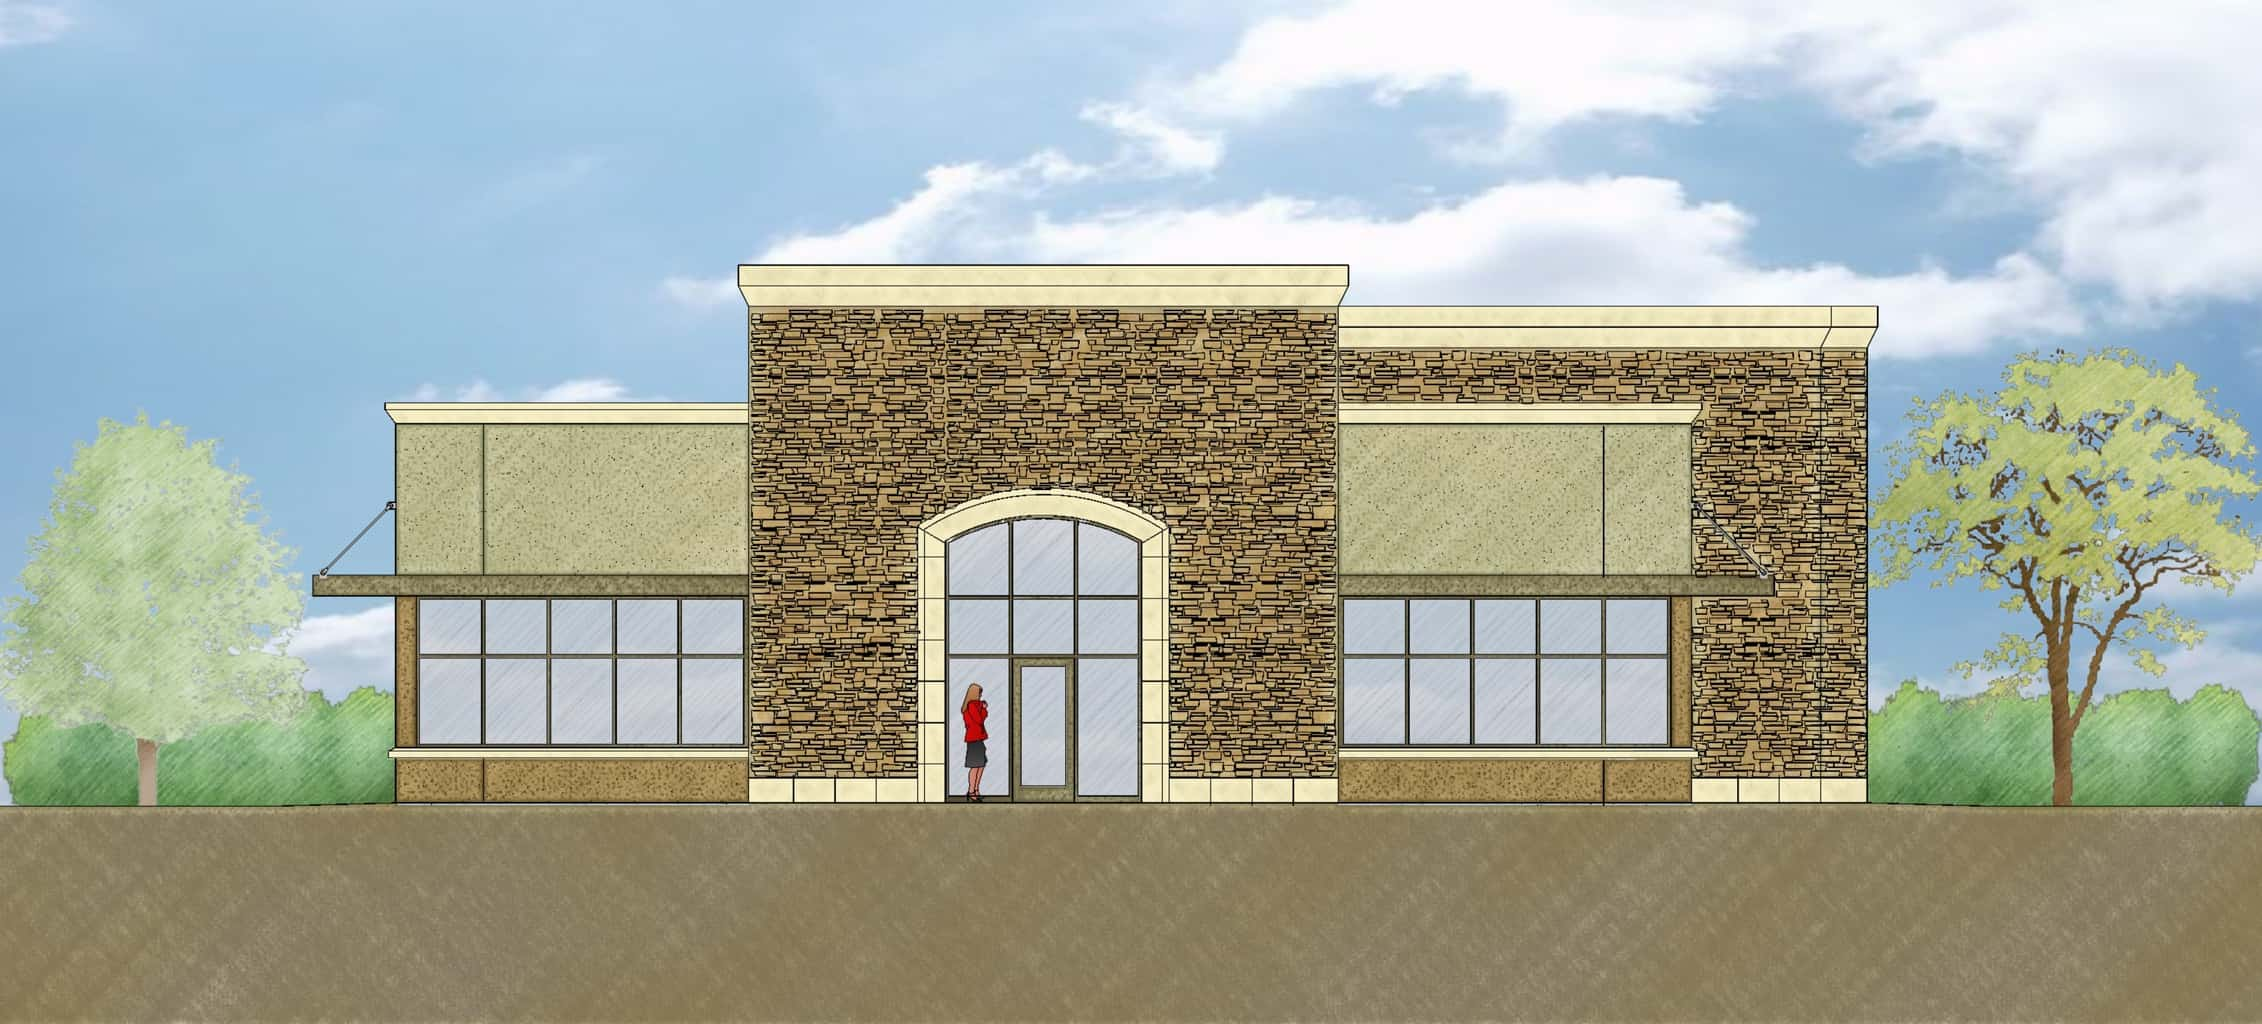 Front Elevation Of Office Building : Orthodontics office d